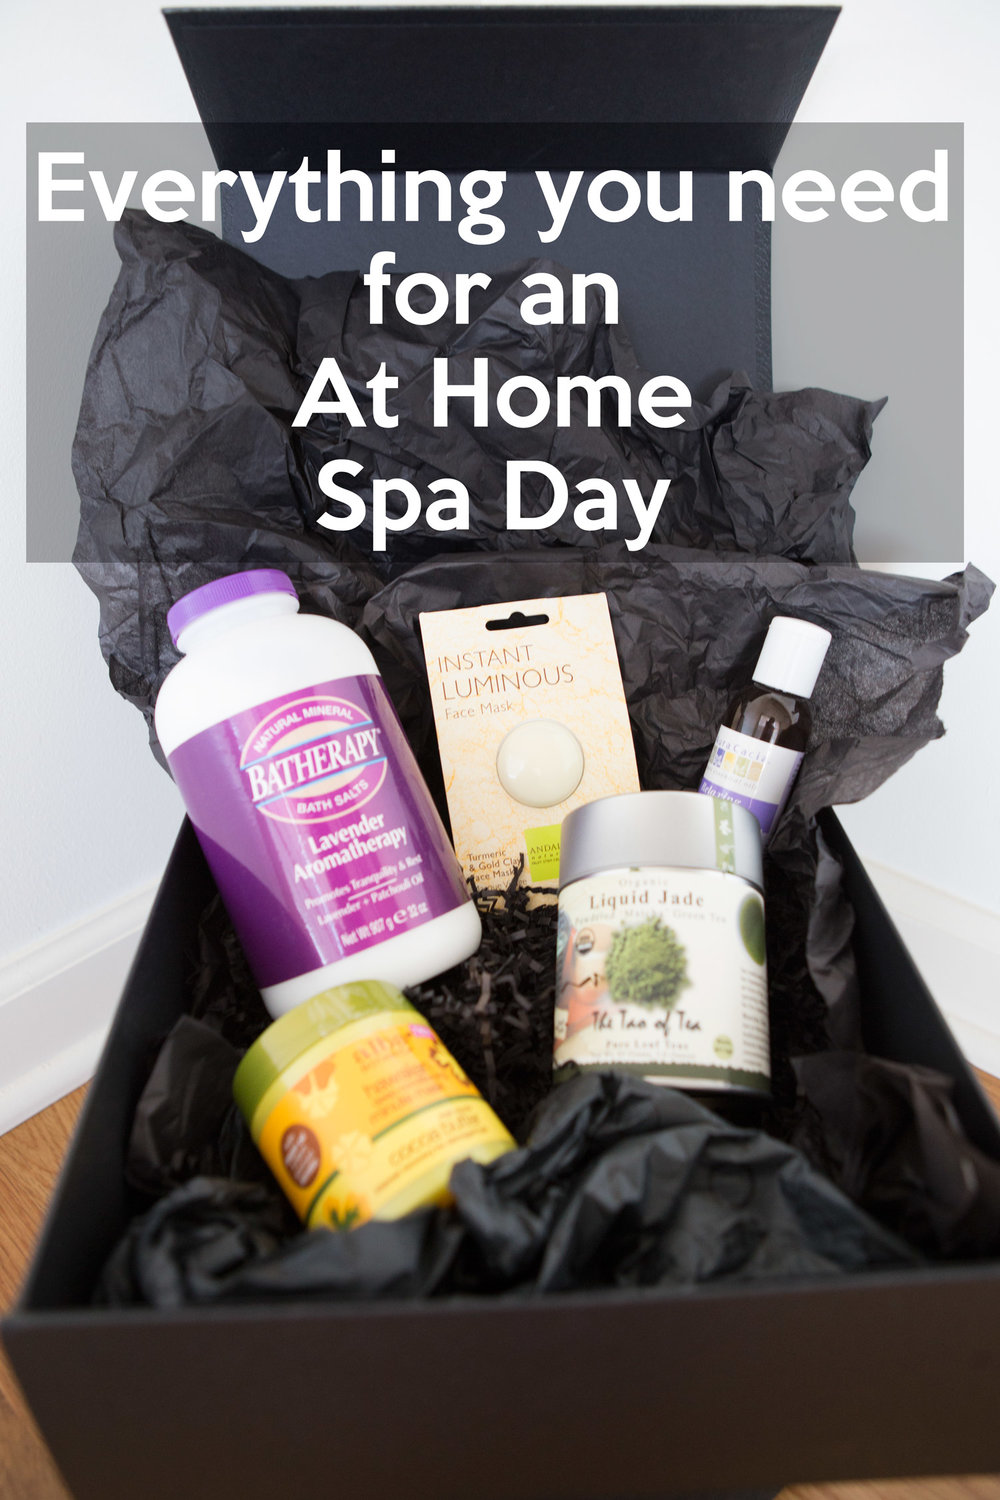 Everything you need for an at-home spa day